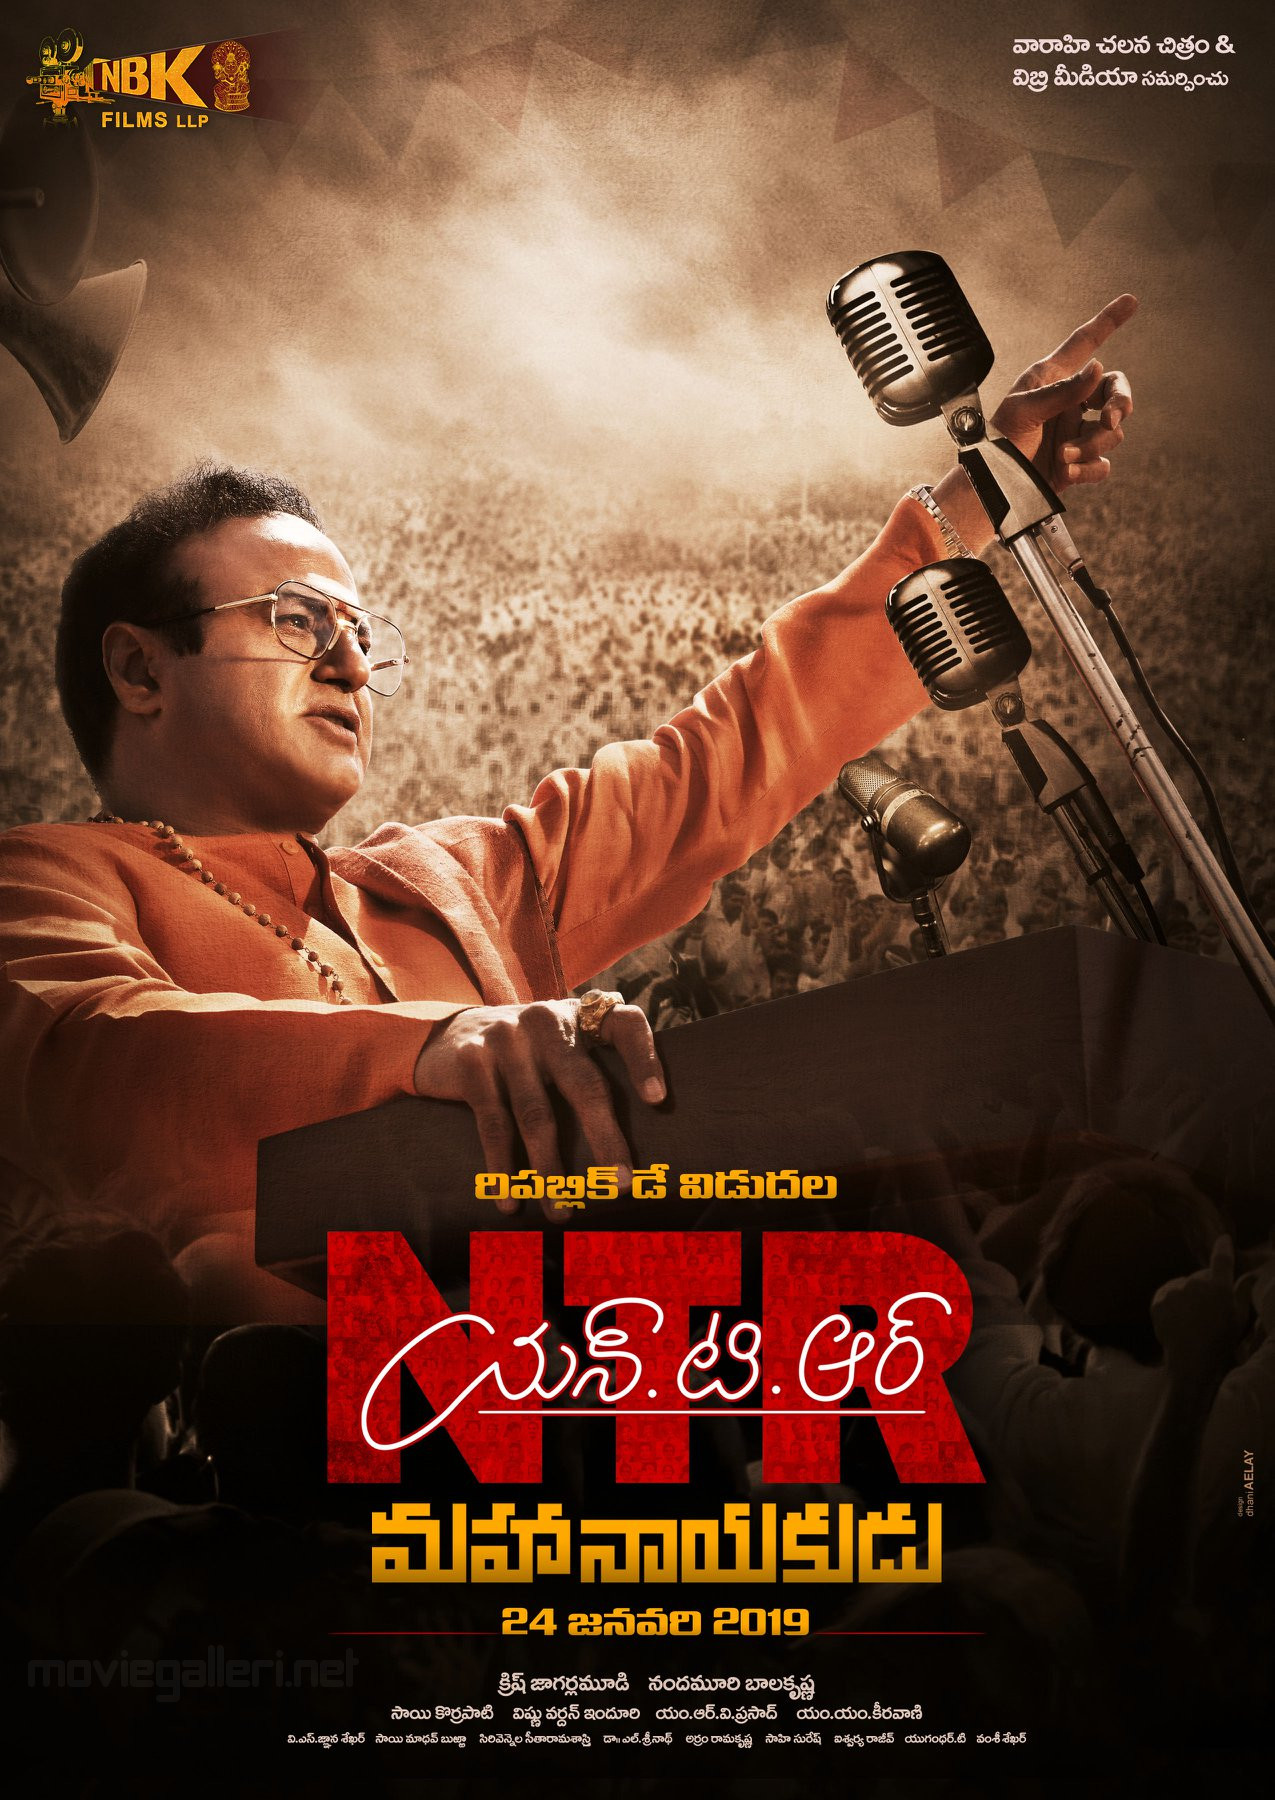 NTR Mahanayakudu Release on 24 January 2019 Poster HD